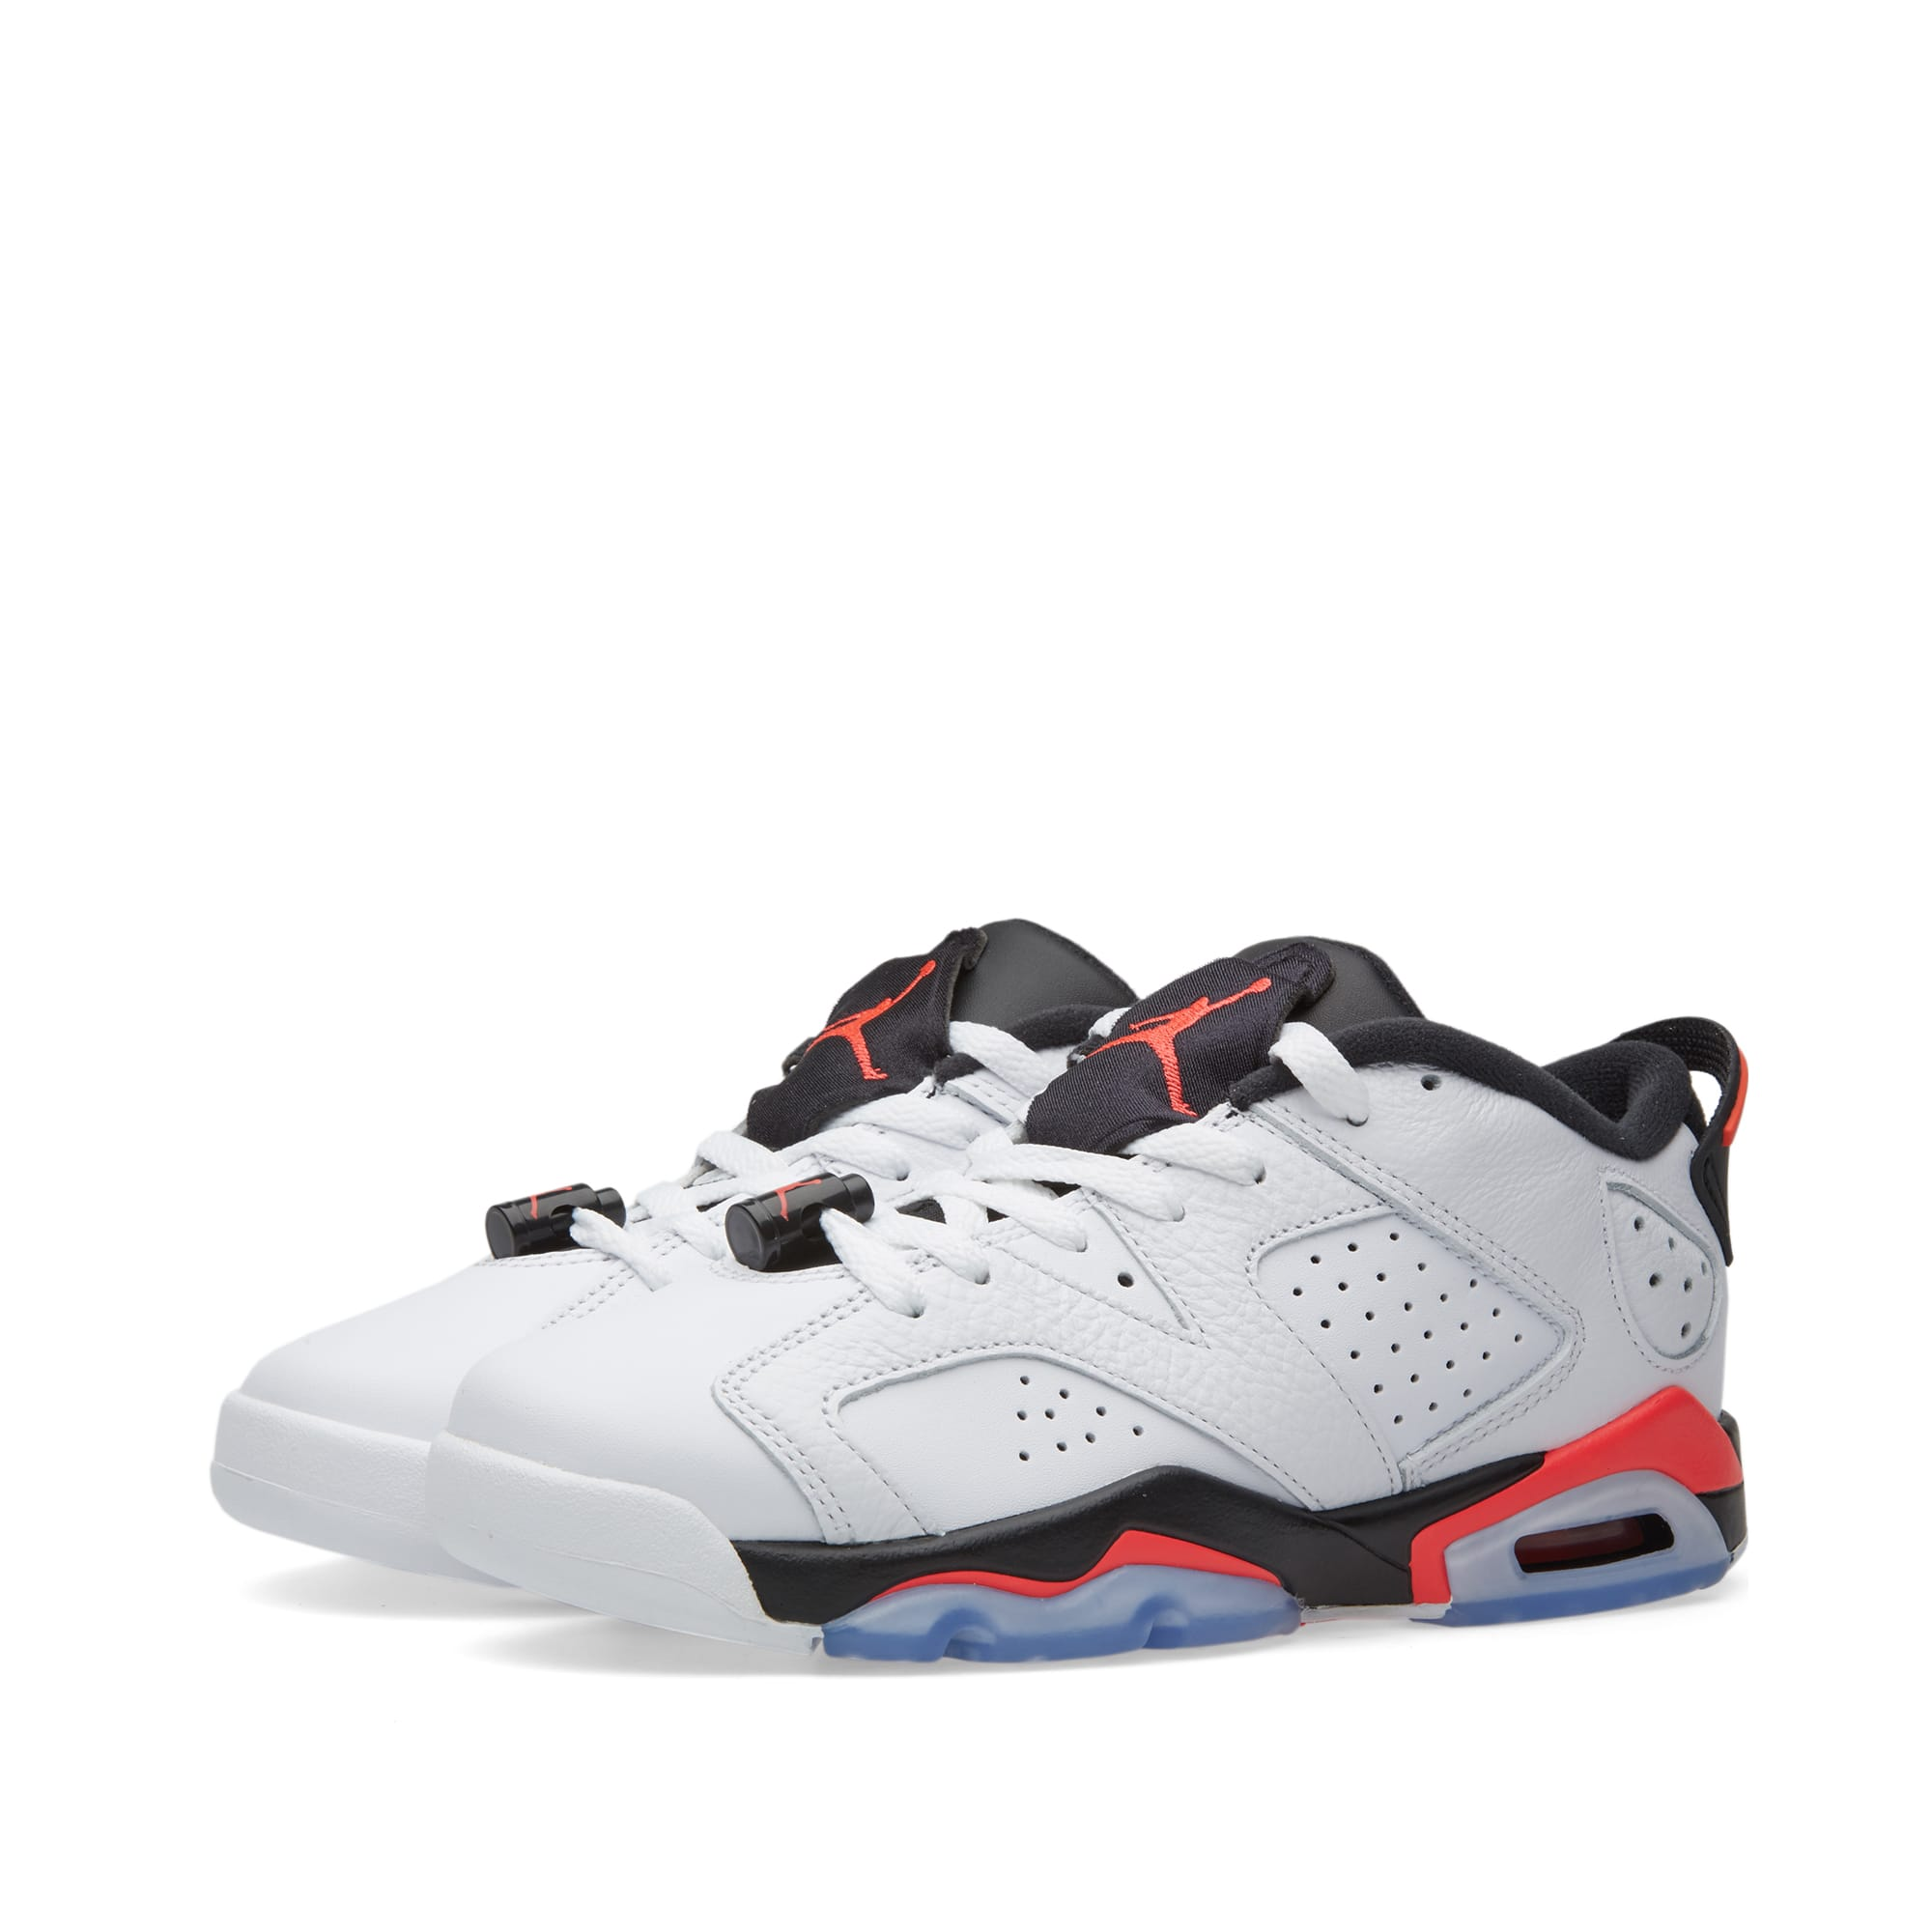 the best attitude 23db2 54baf Nike Air Jordan 6 Retro Low BG